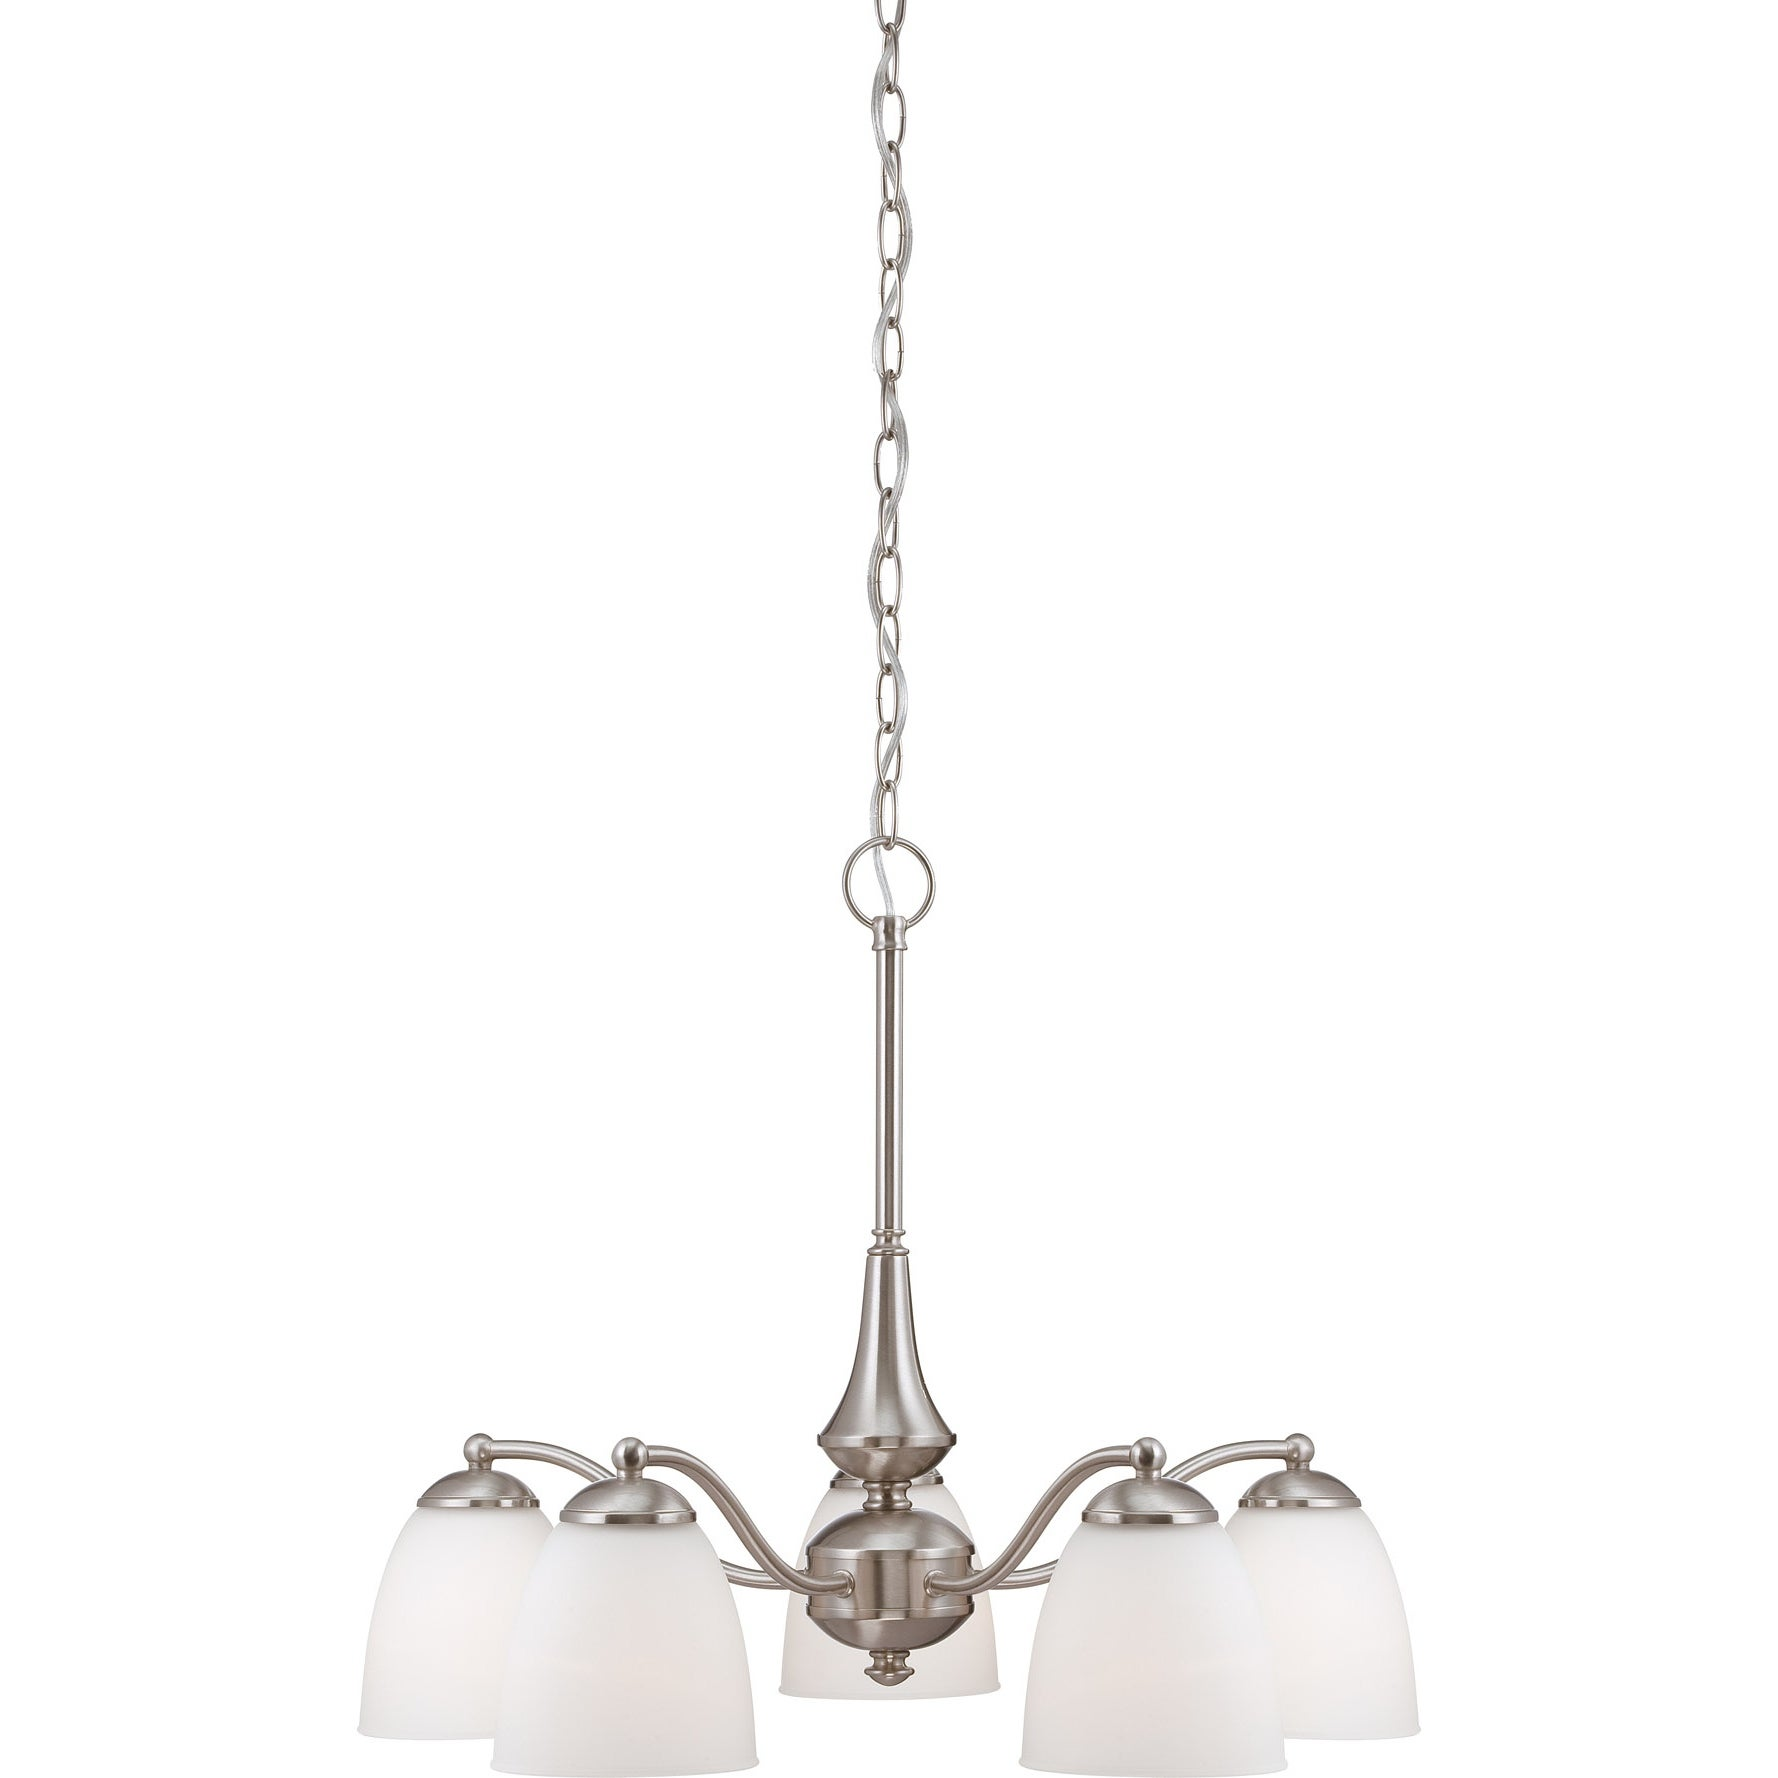 Nuvo Patton 5-light Brushed Nickel Fluorescent Chandelier